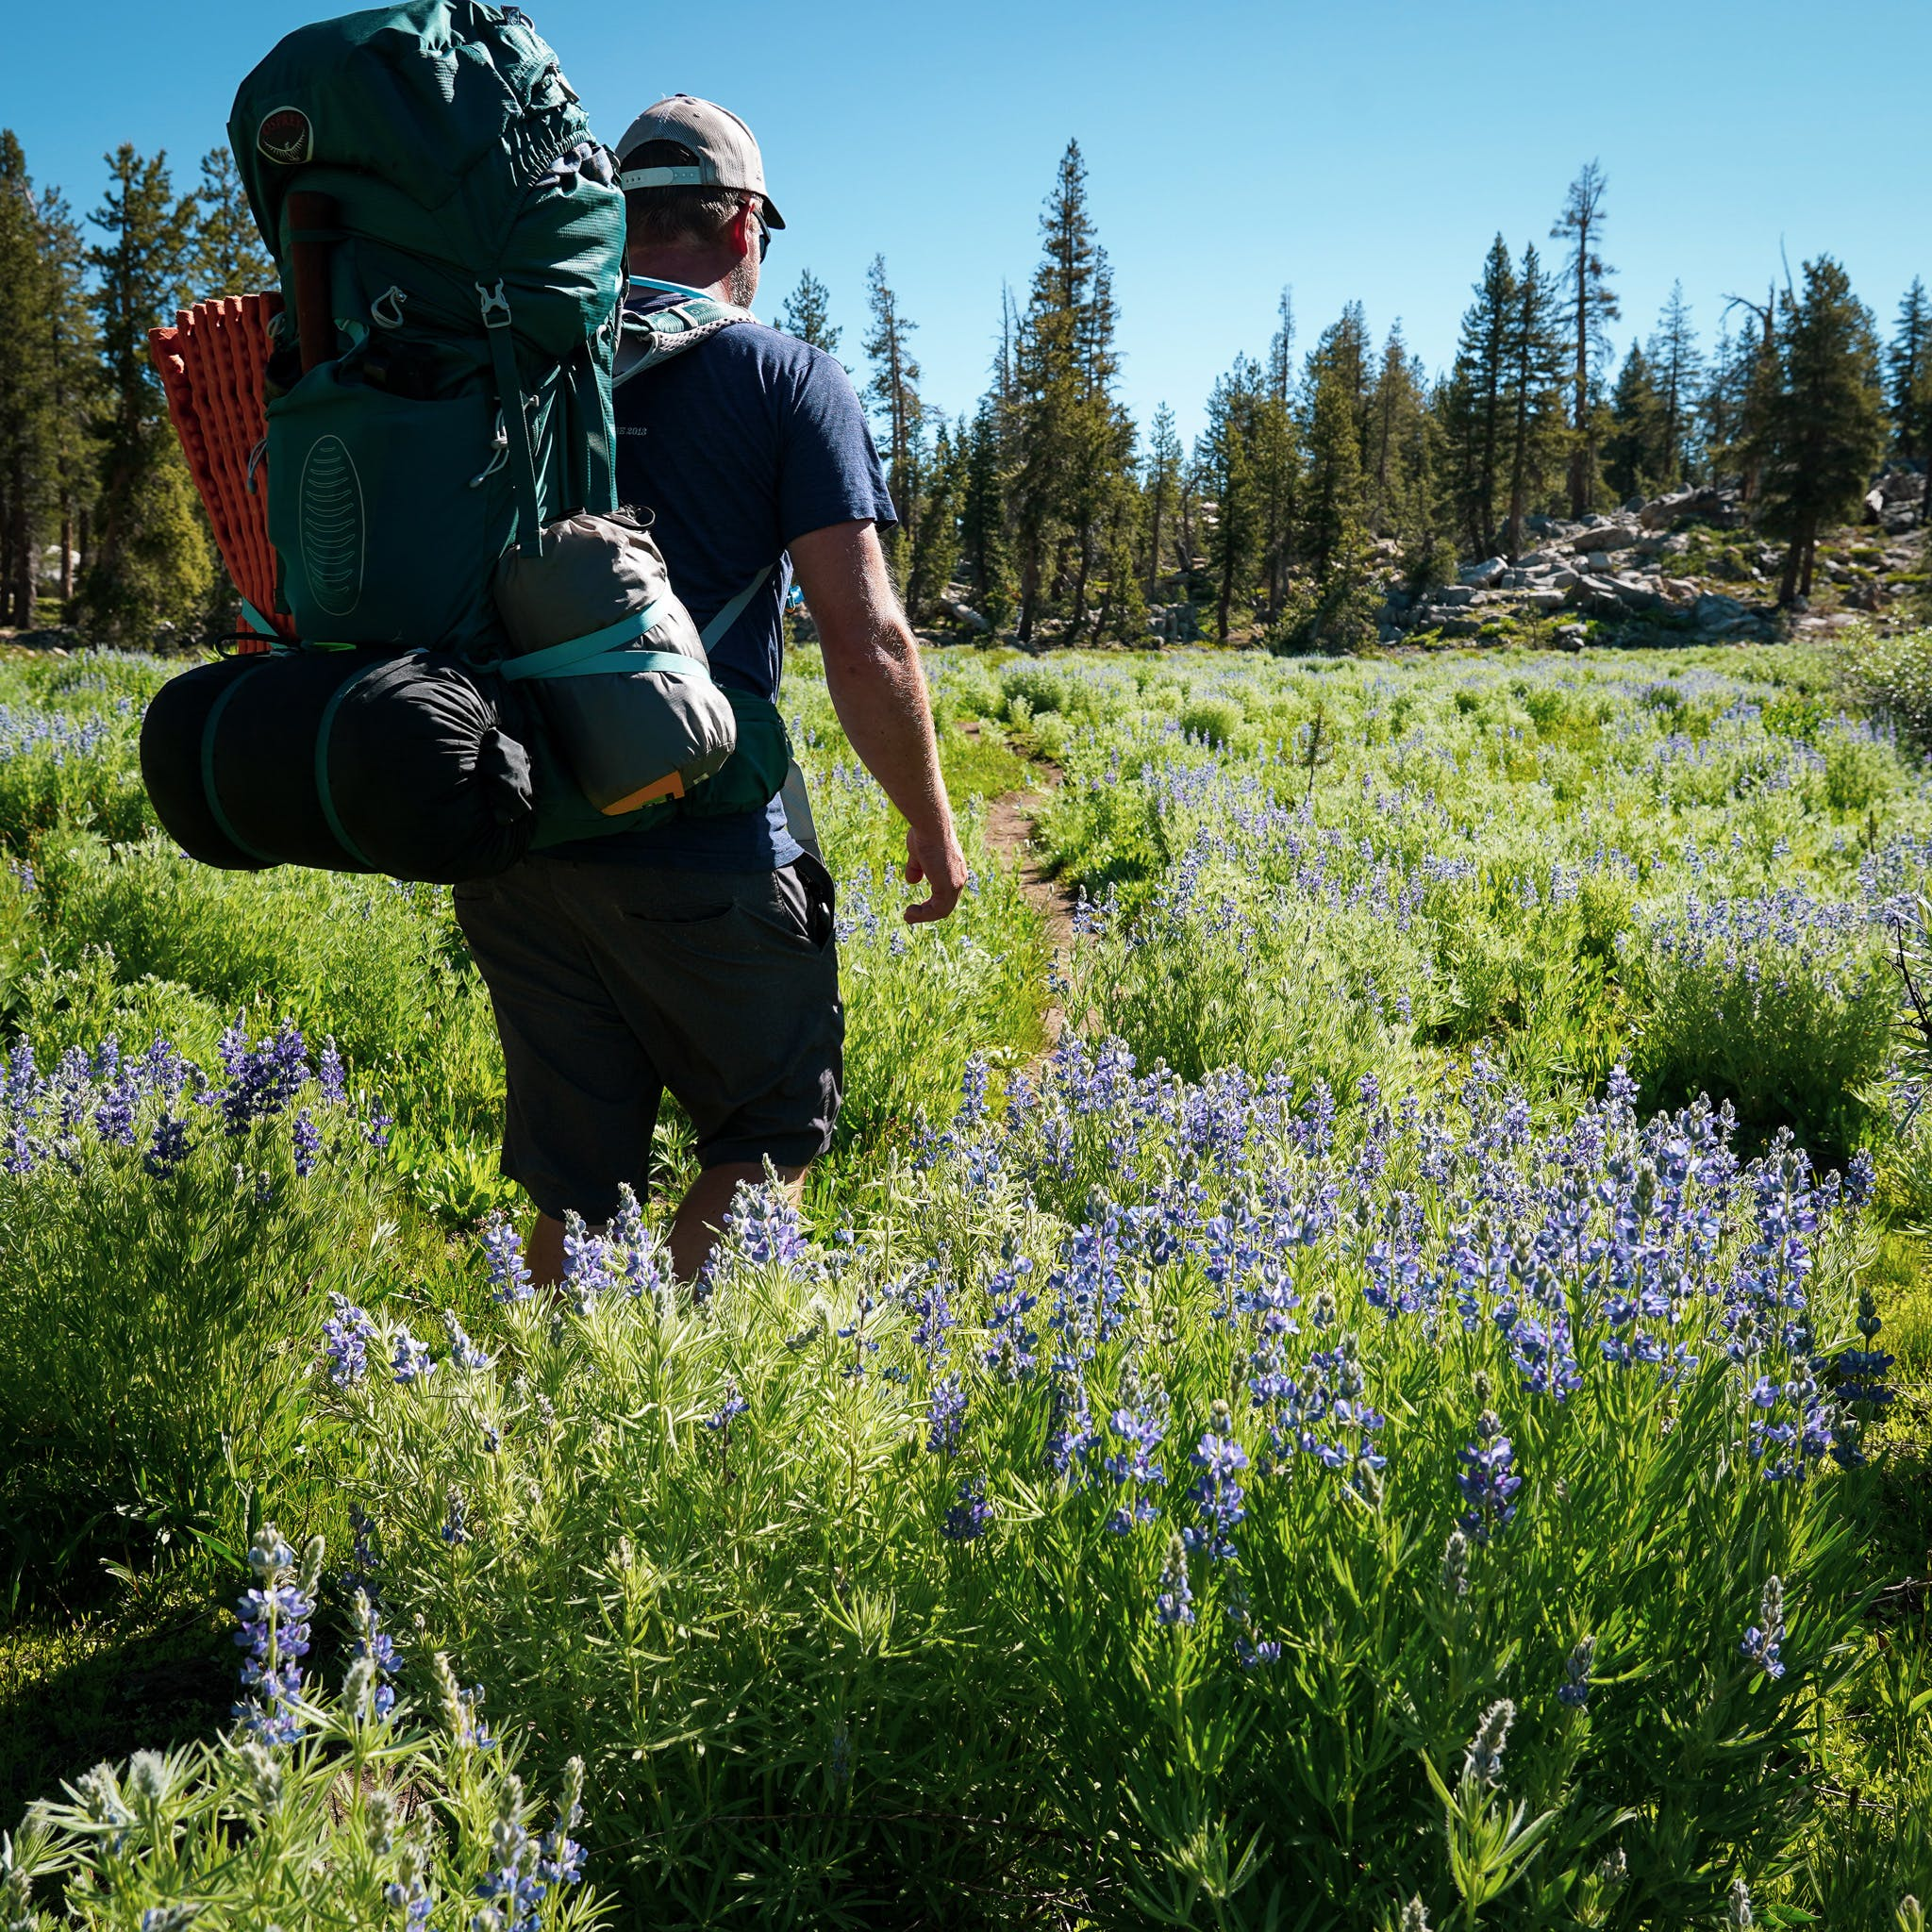 wildflowers and hiker in the Emigrant Wilderness